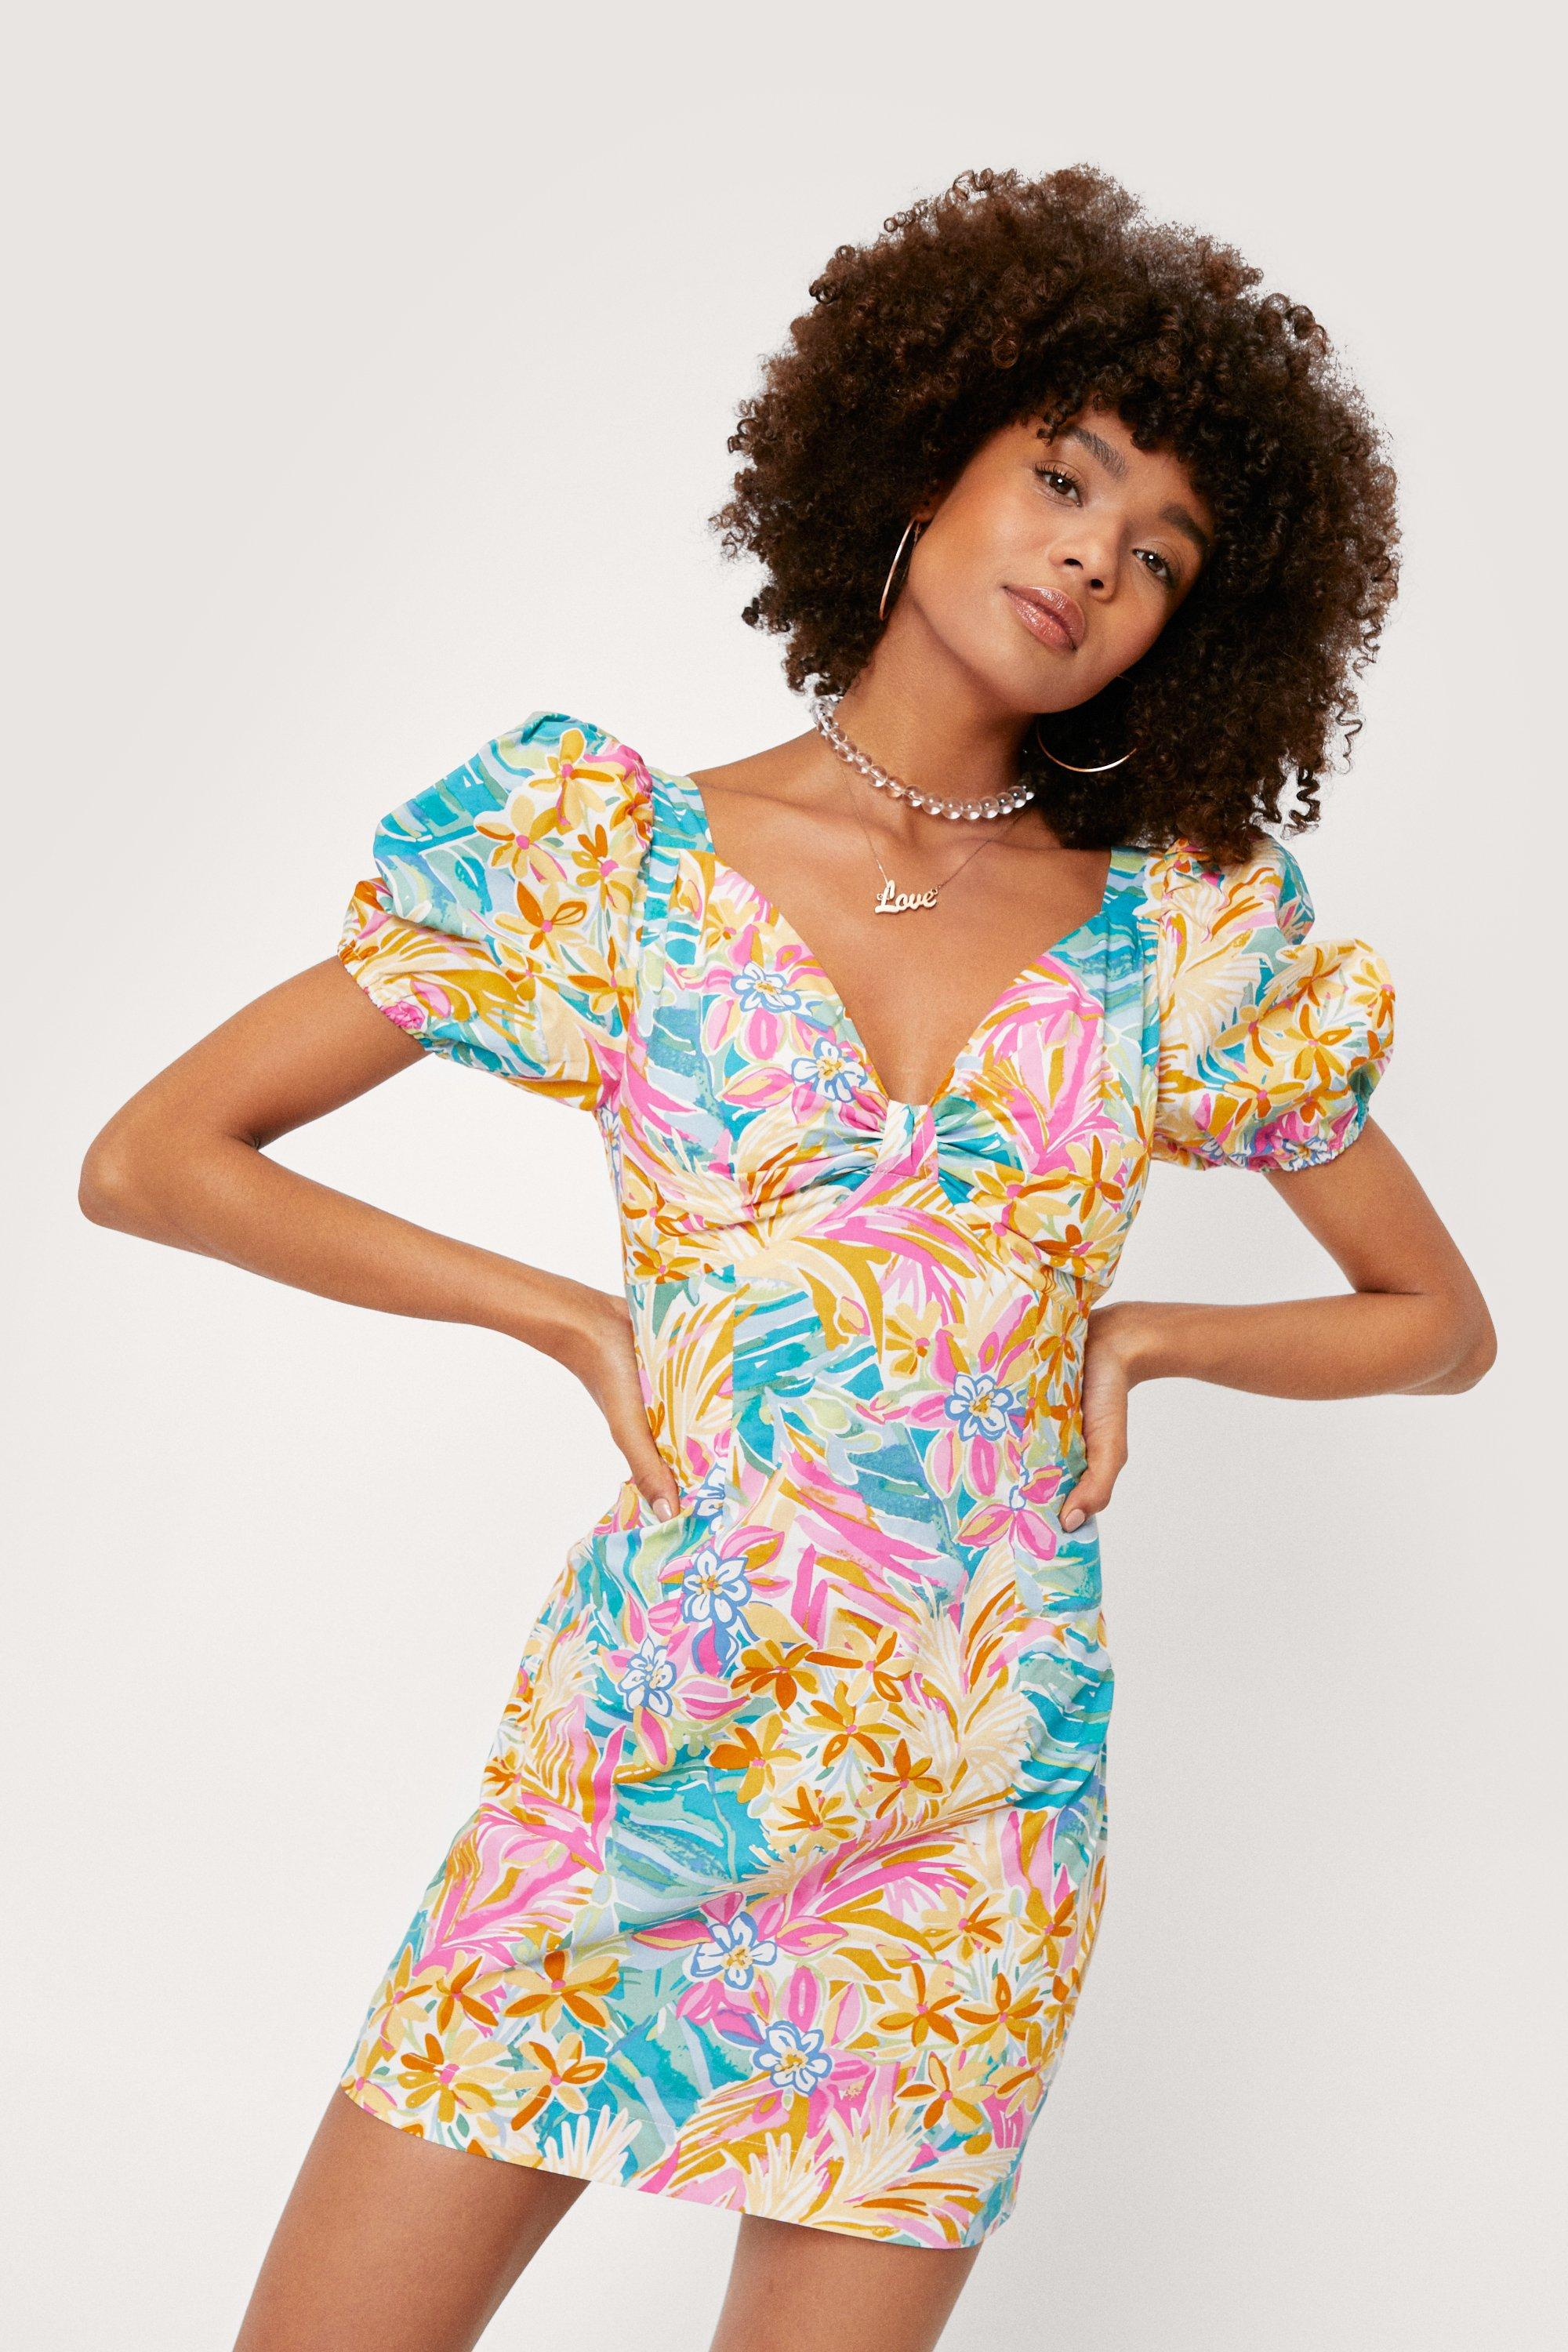 1980s Clothing, Fashion | 80s Style Clothes Womens Floral Knot Front Puff Sleeve Mini Dress - Yellow - 10 $19.00 AT vintagedancer.com